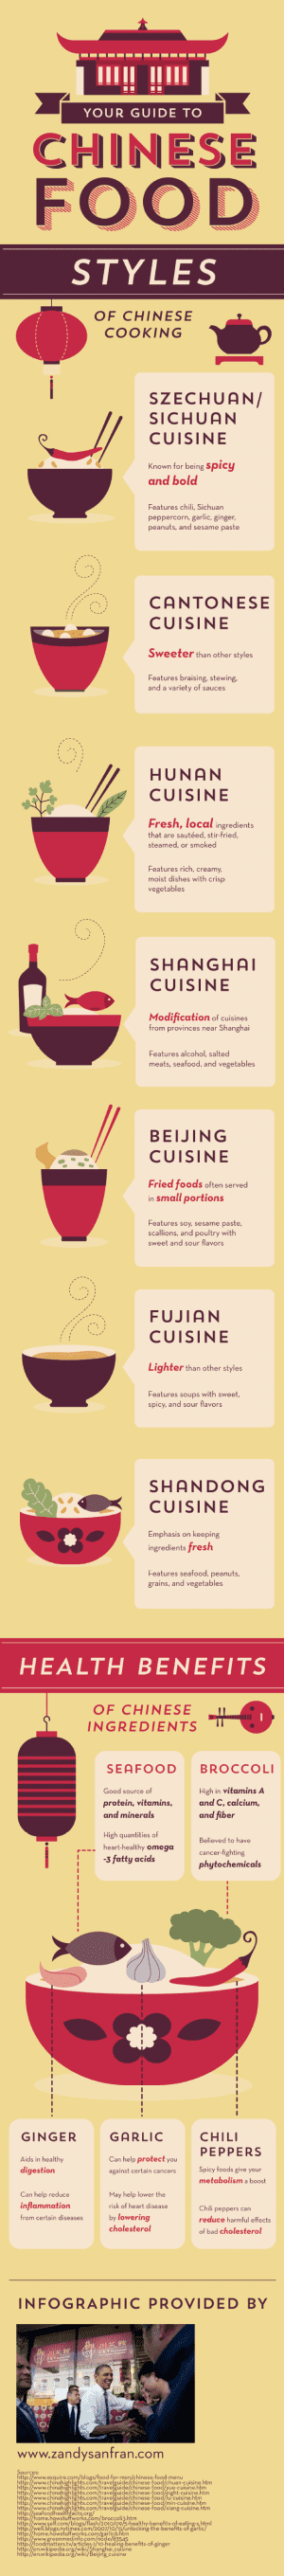 7 Chinese Food Styles Explained